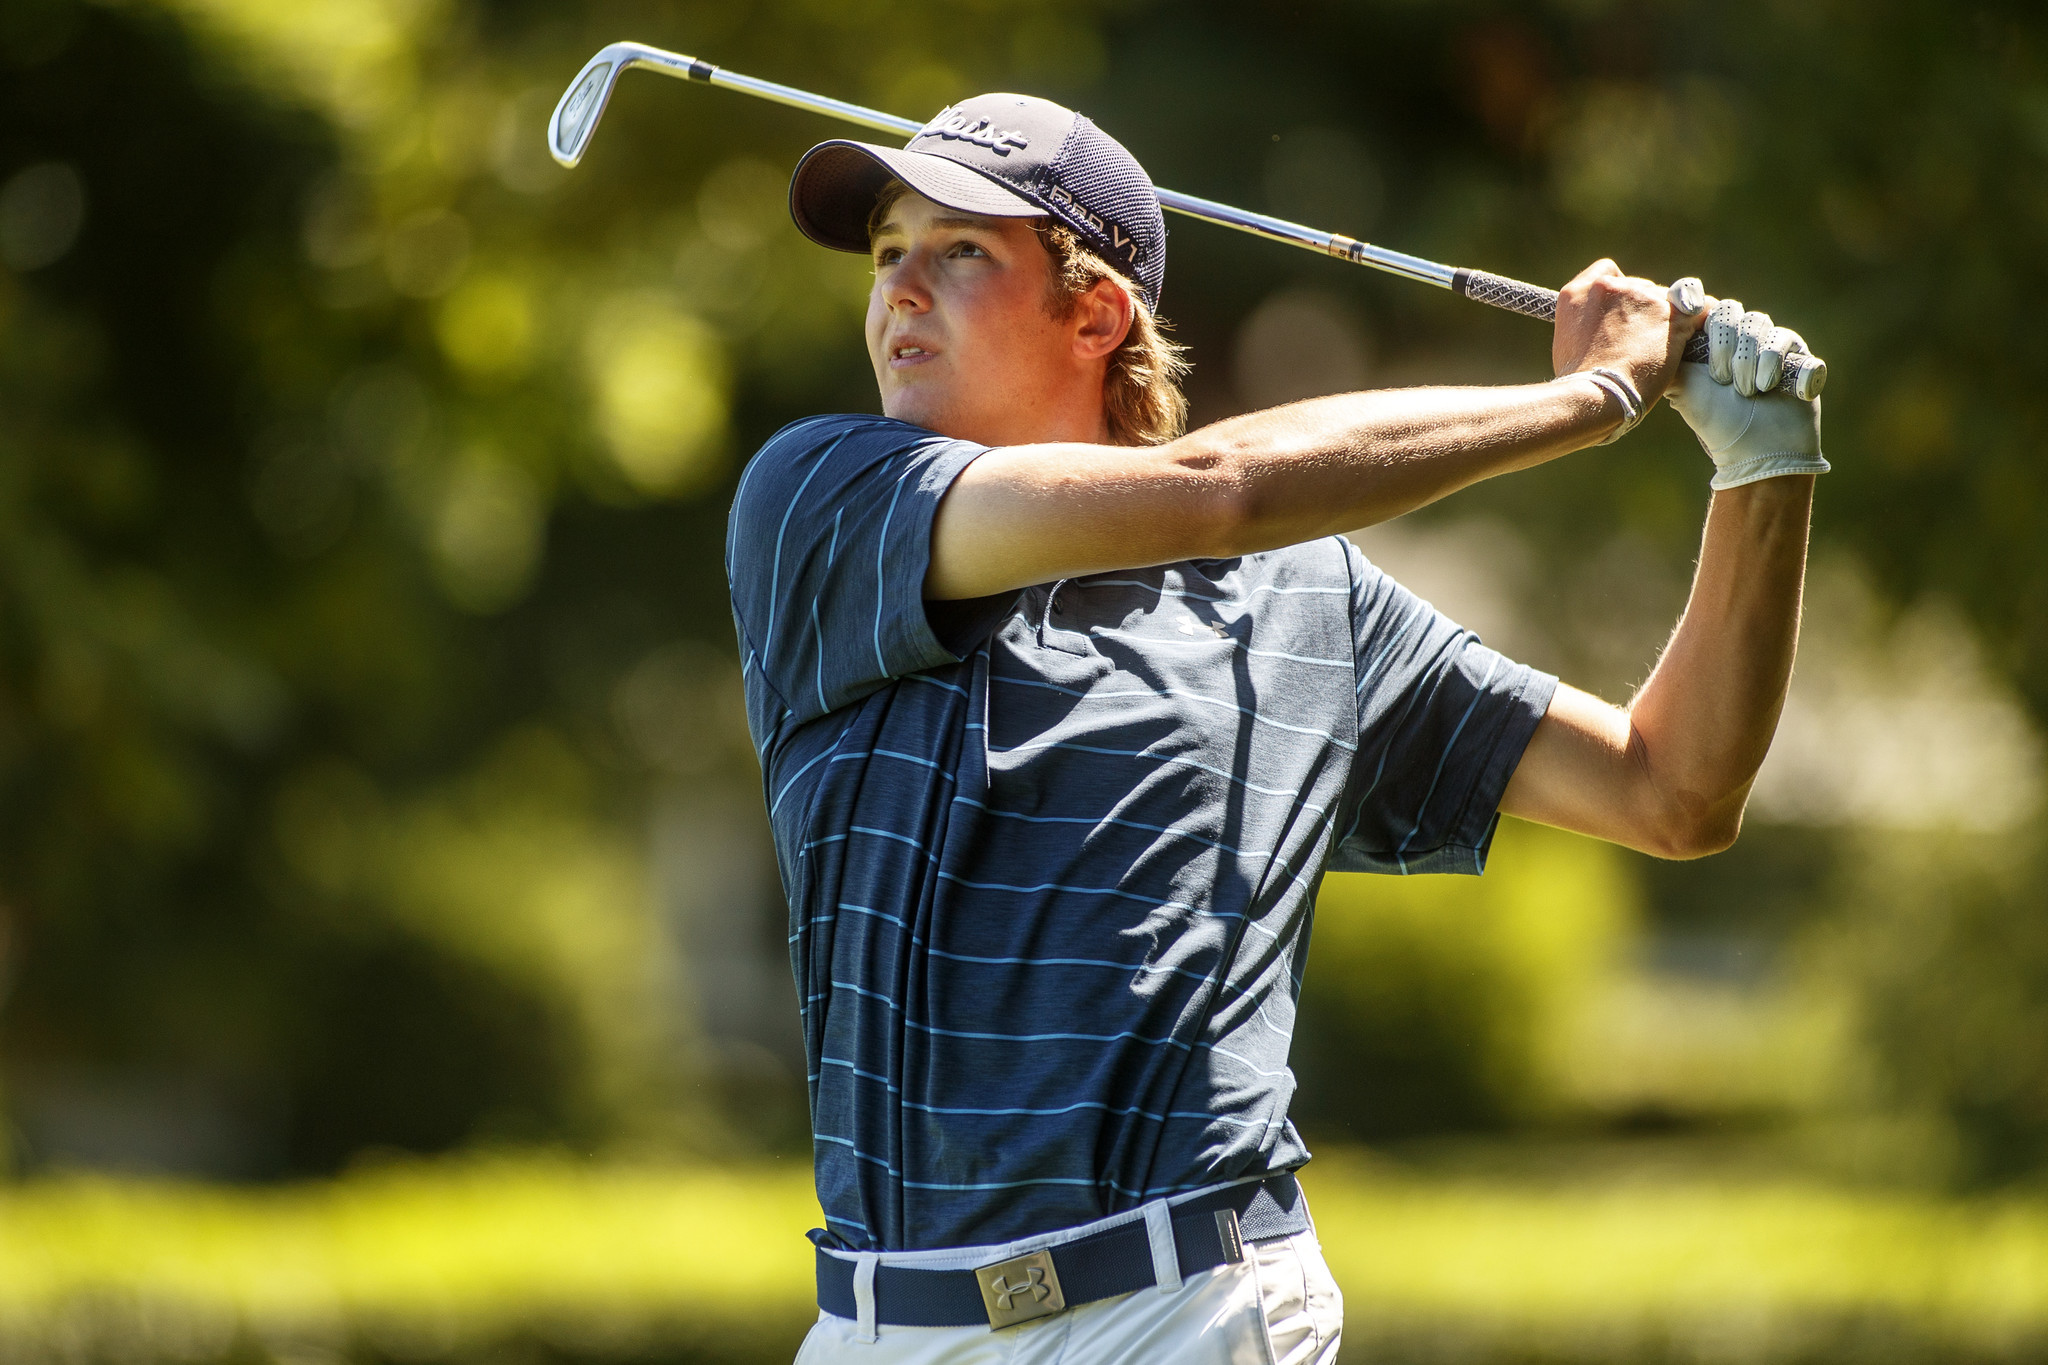 Belcastro Takes Home CT Junior Amateur Golf Championship - Hartford